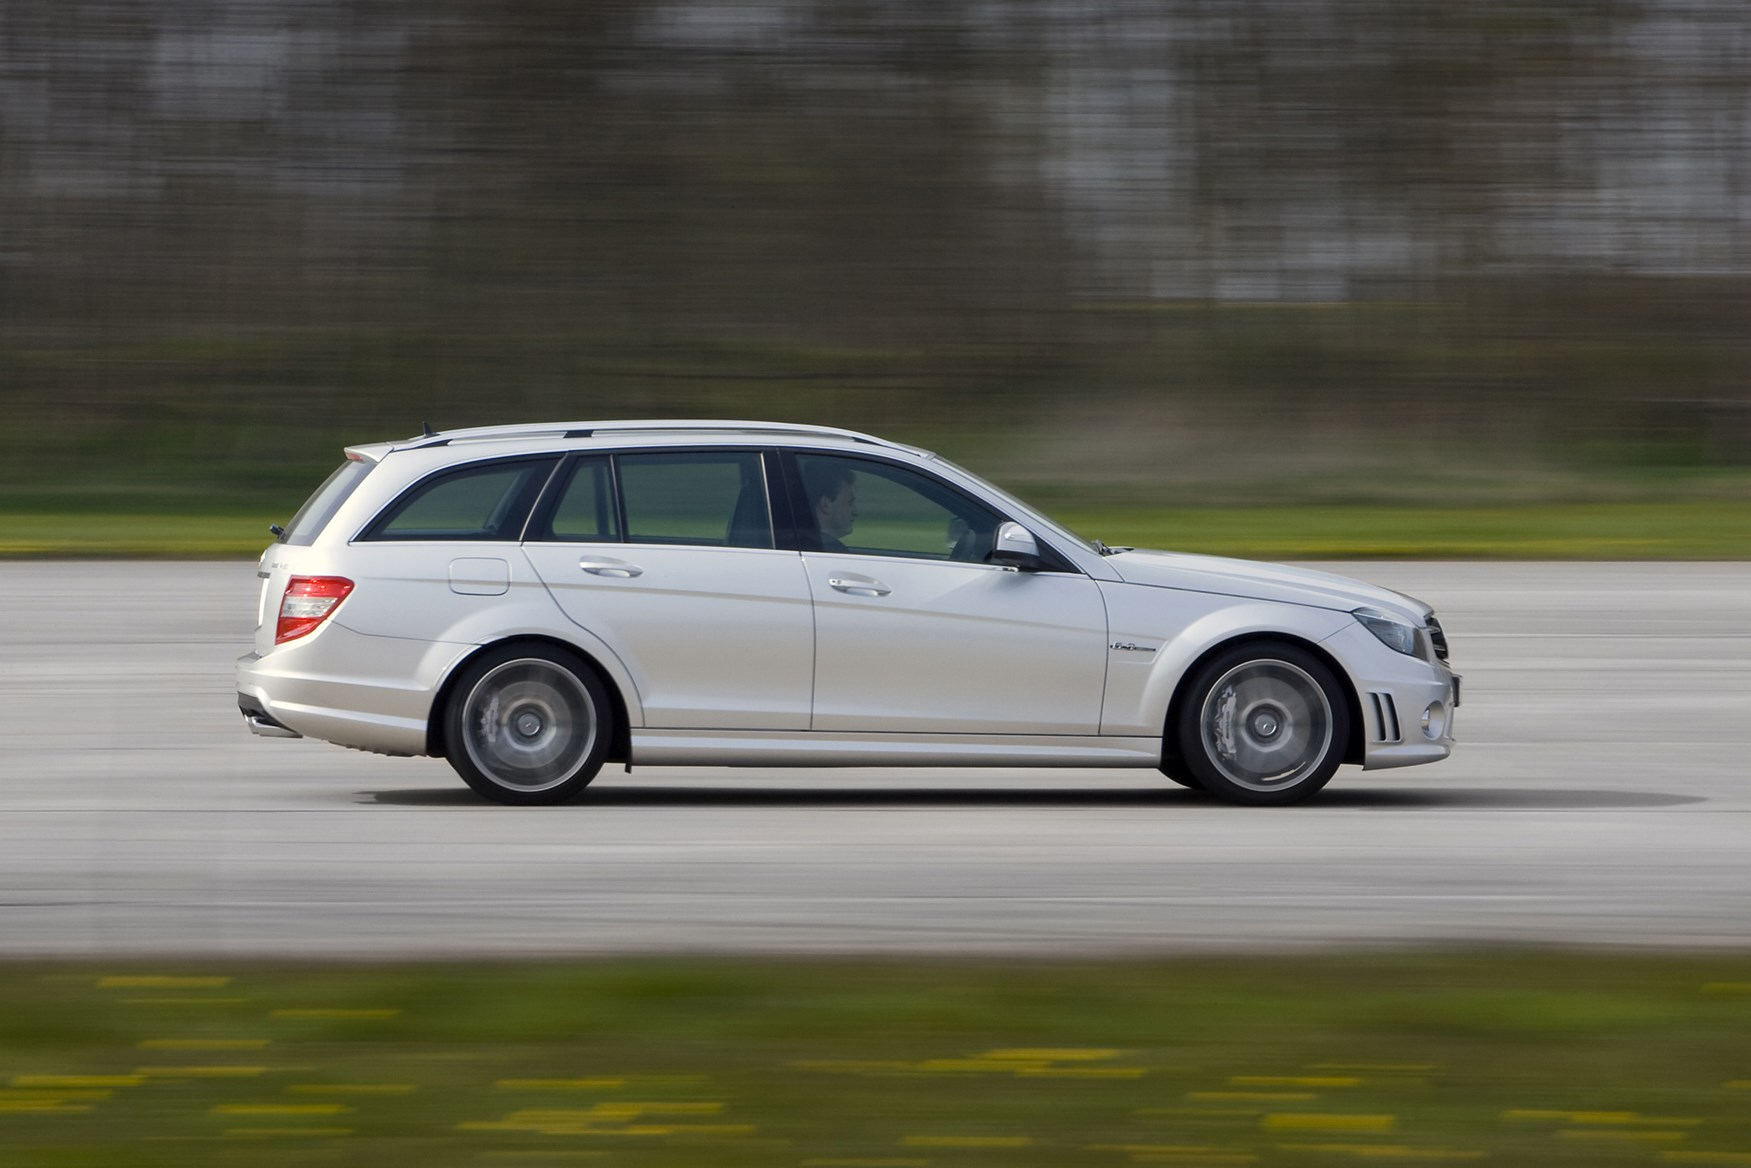 Used Mercedes-Benz C-Class AMG (2008 - 2011) Review | Parkers